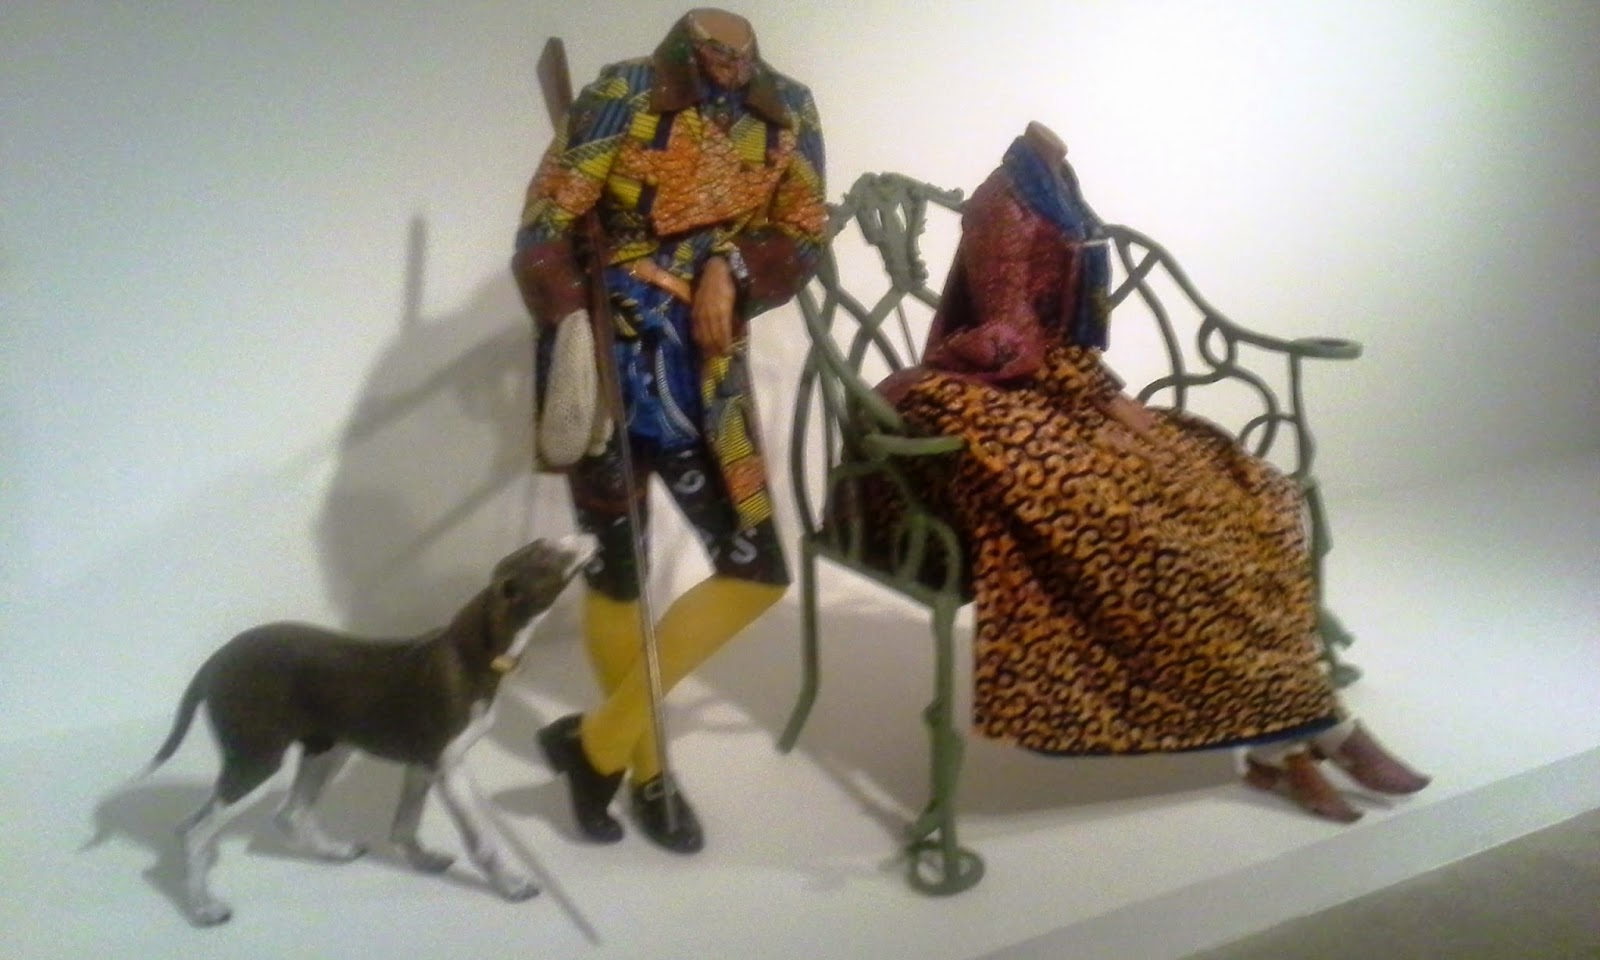 MOCCA Exhibit: Misled By Nature: Contemporary Art and the Baroque. Mr. and Mrs. Andrews Without Their Heads by Yinka Shonibare, 1998 Art Culture Toronto Blogger Melanie.Ps The Purple Scarf